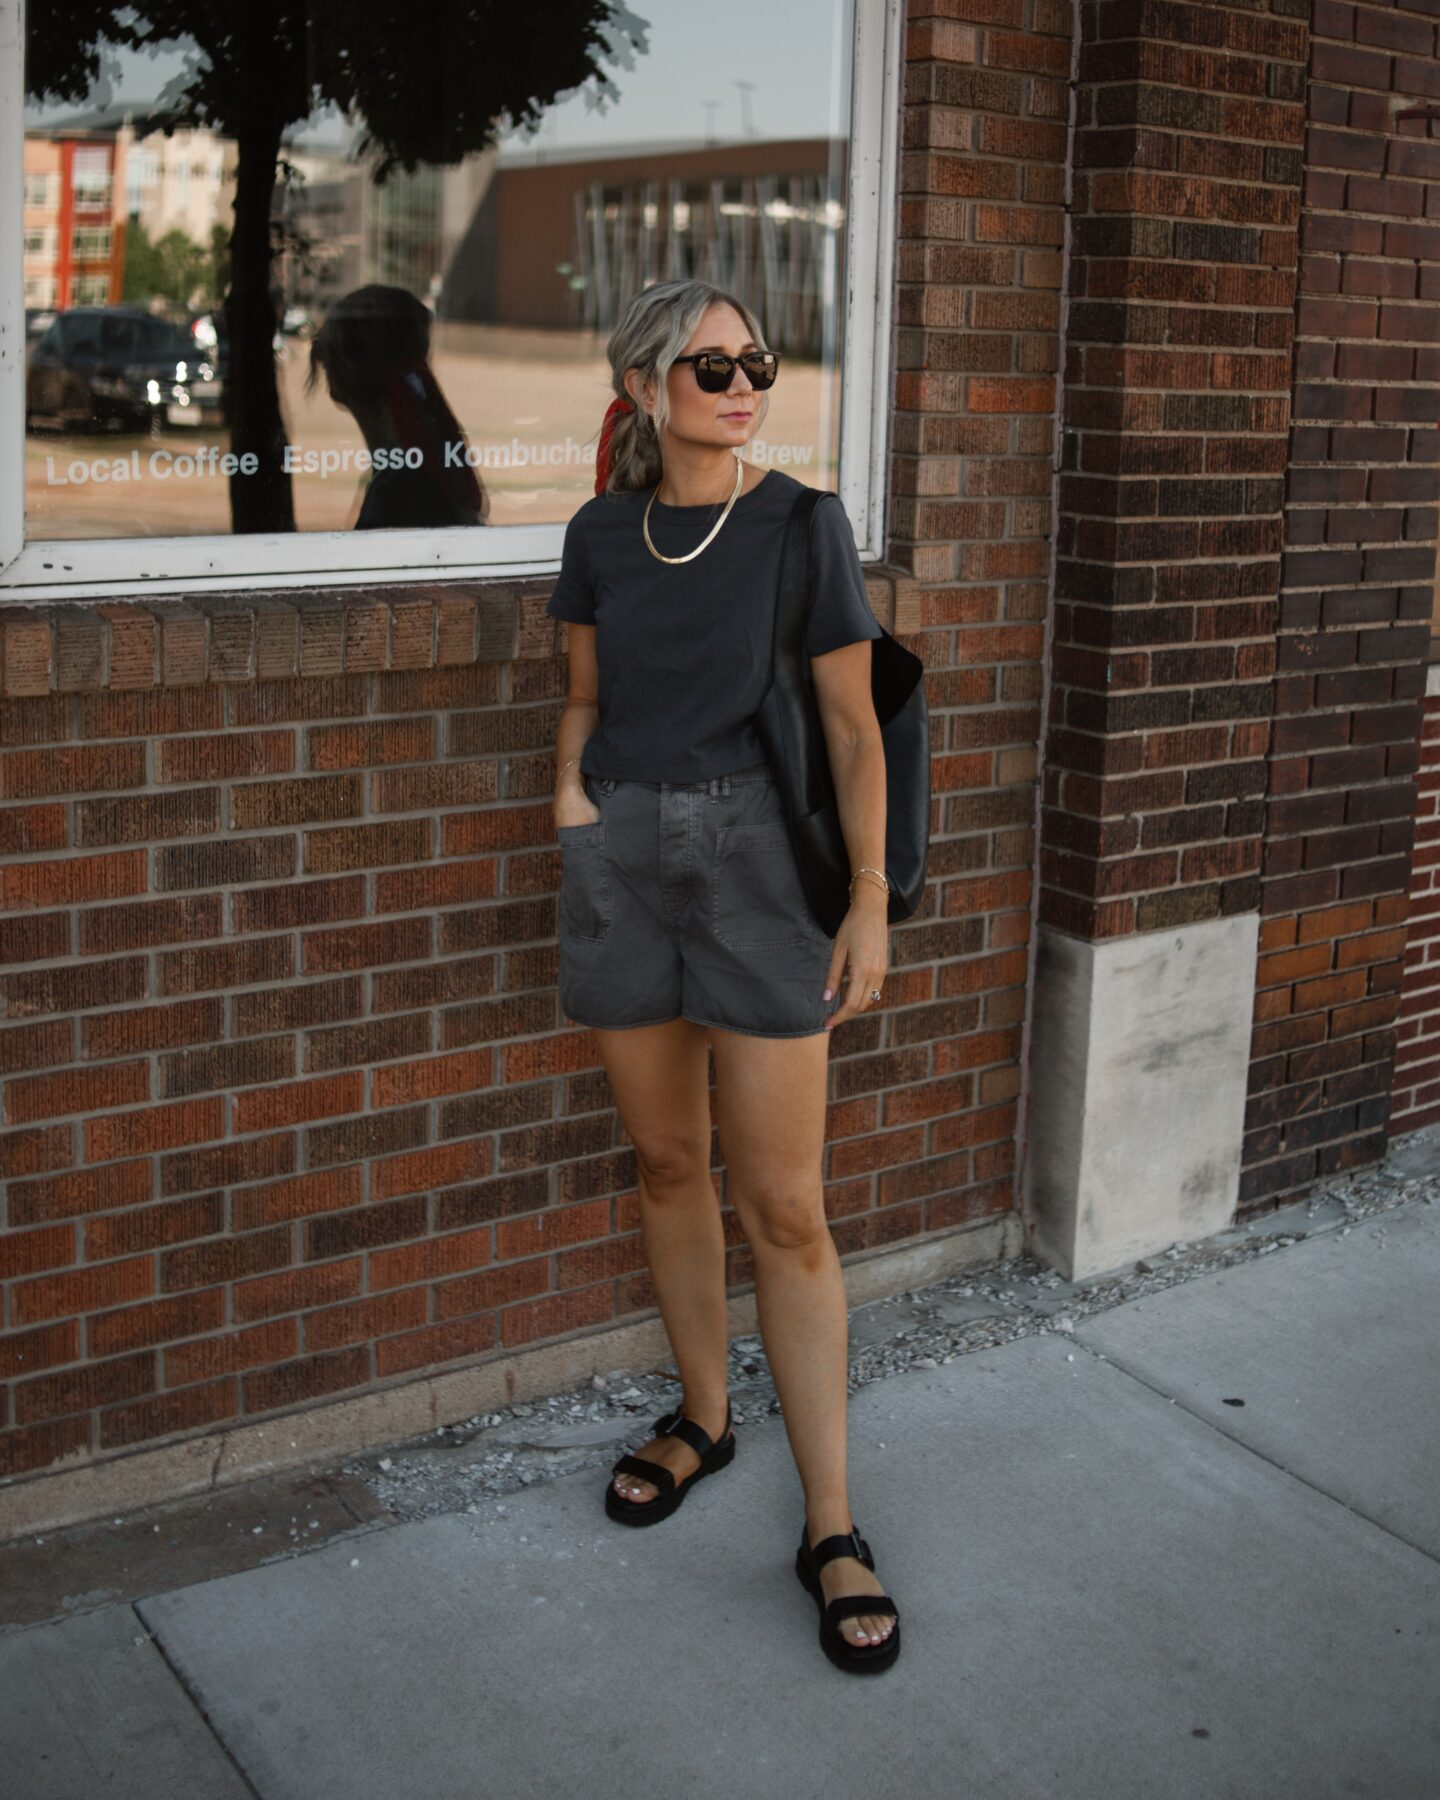 madewell haul, madewell supercrop tee, madewell belclaire pull on shorts, madewell cady lugsole sandals, Madewell oversized shopper bag, review